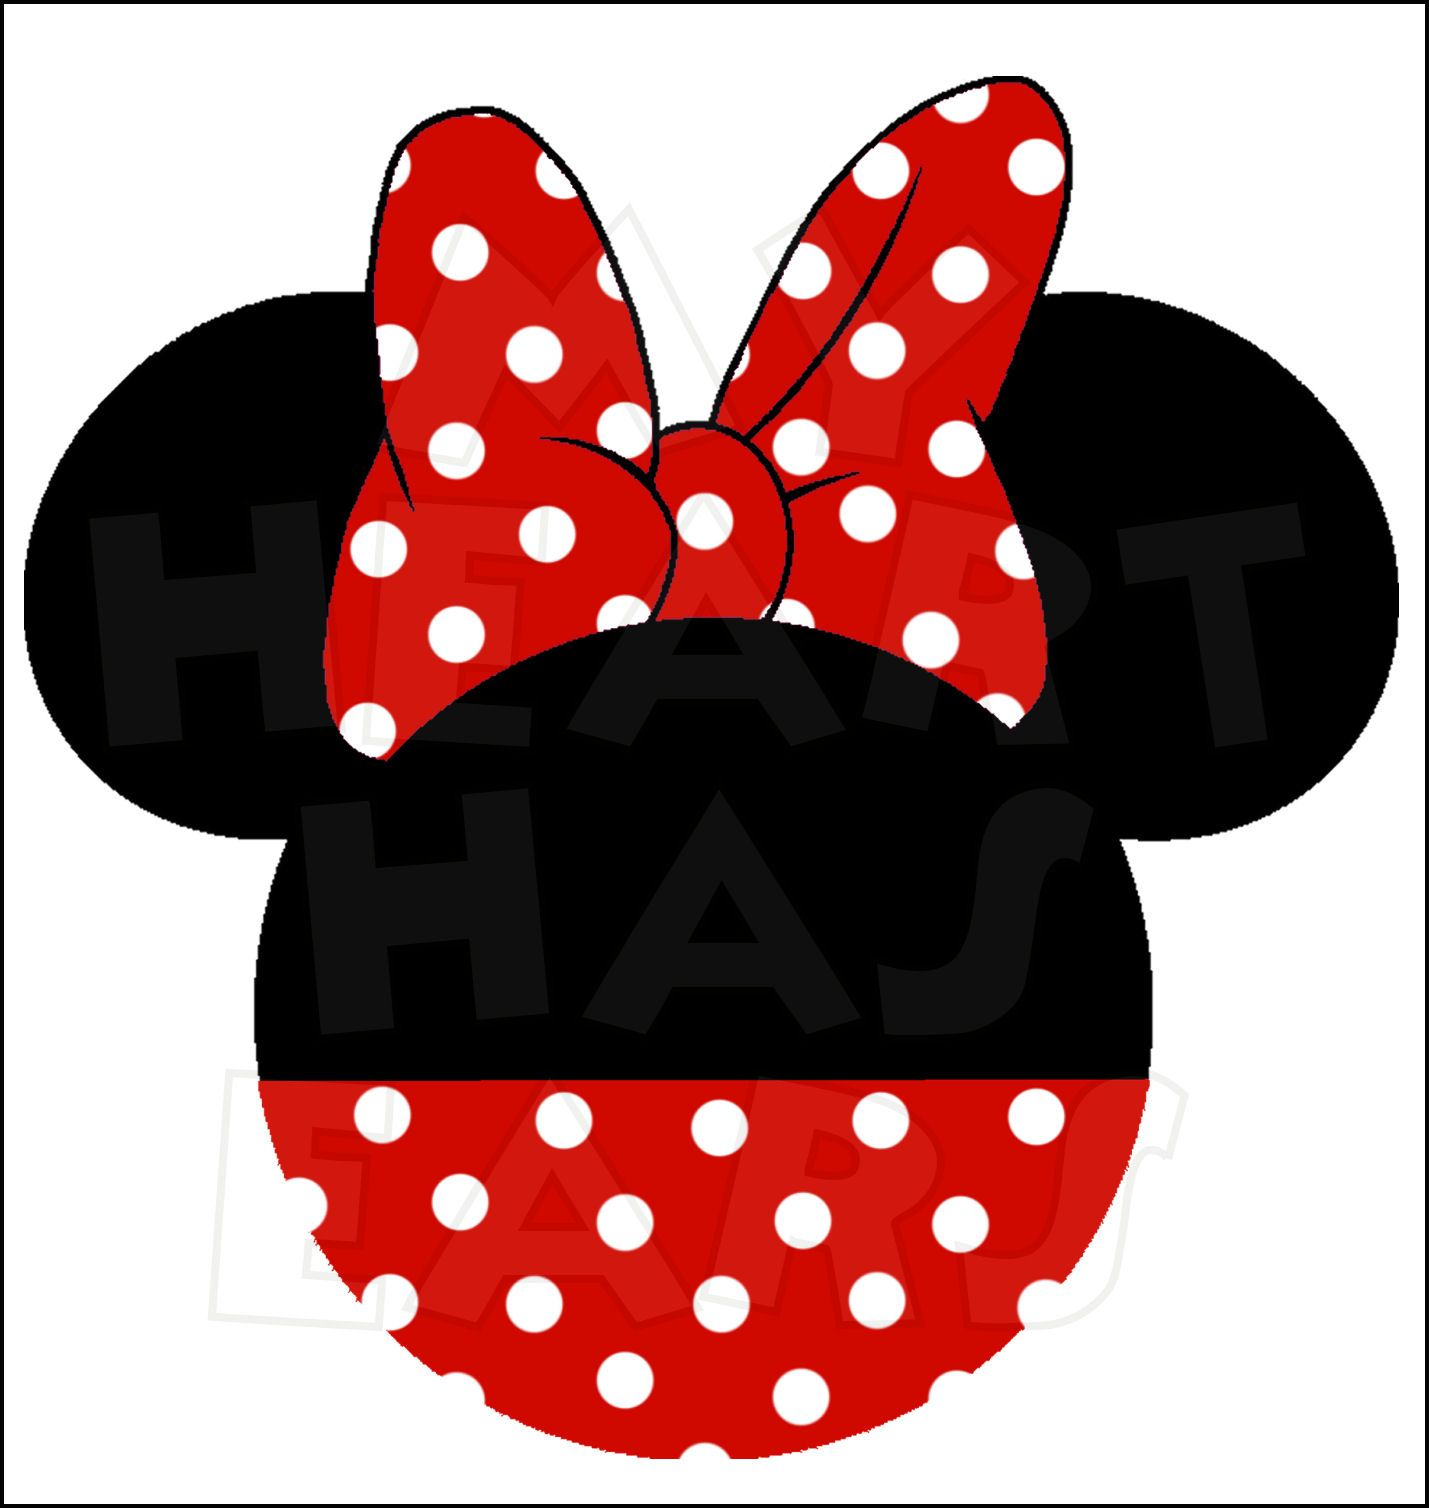 minnie mouse ear clip art clipart panda free clipart images rh pinterest com minnie mouse clipart minnie mouse clip art free download